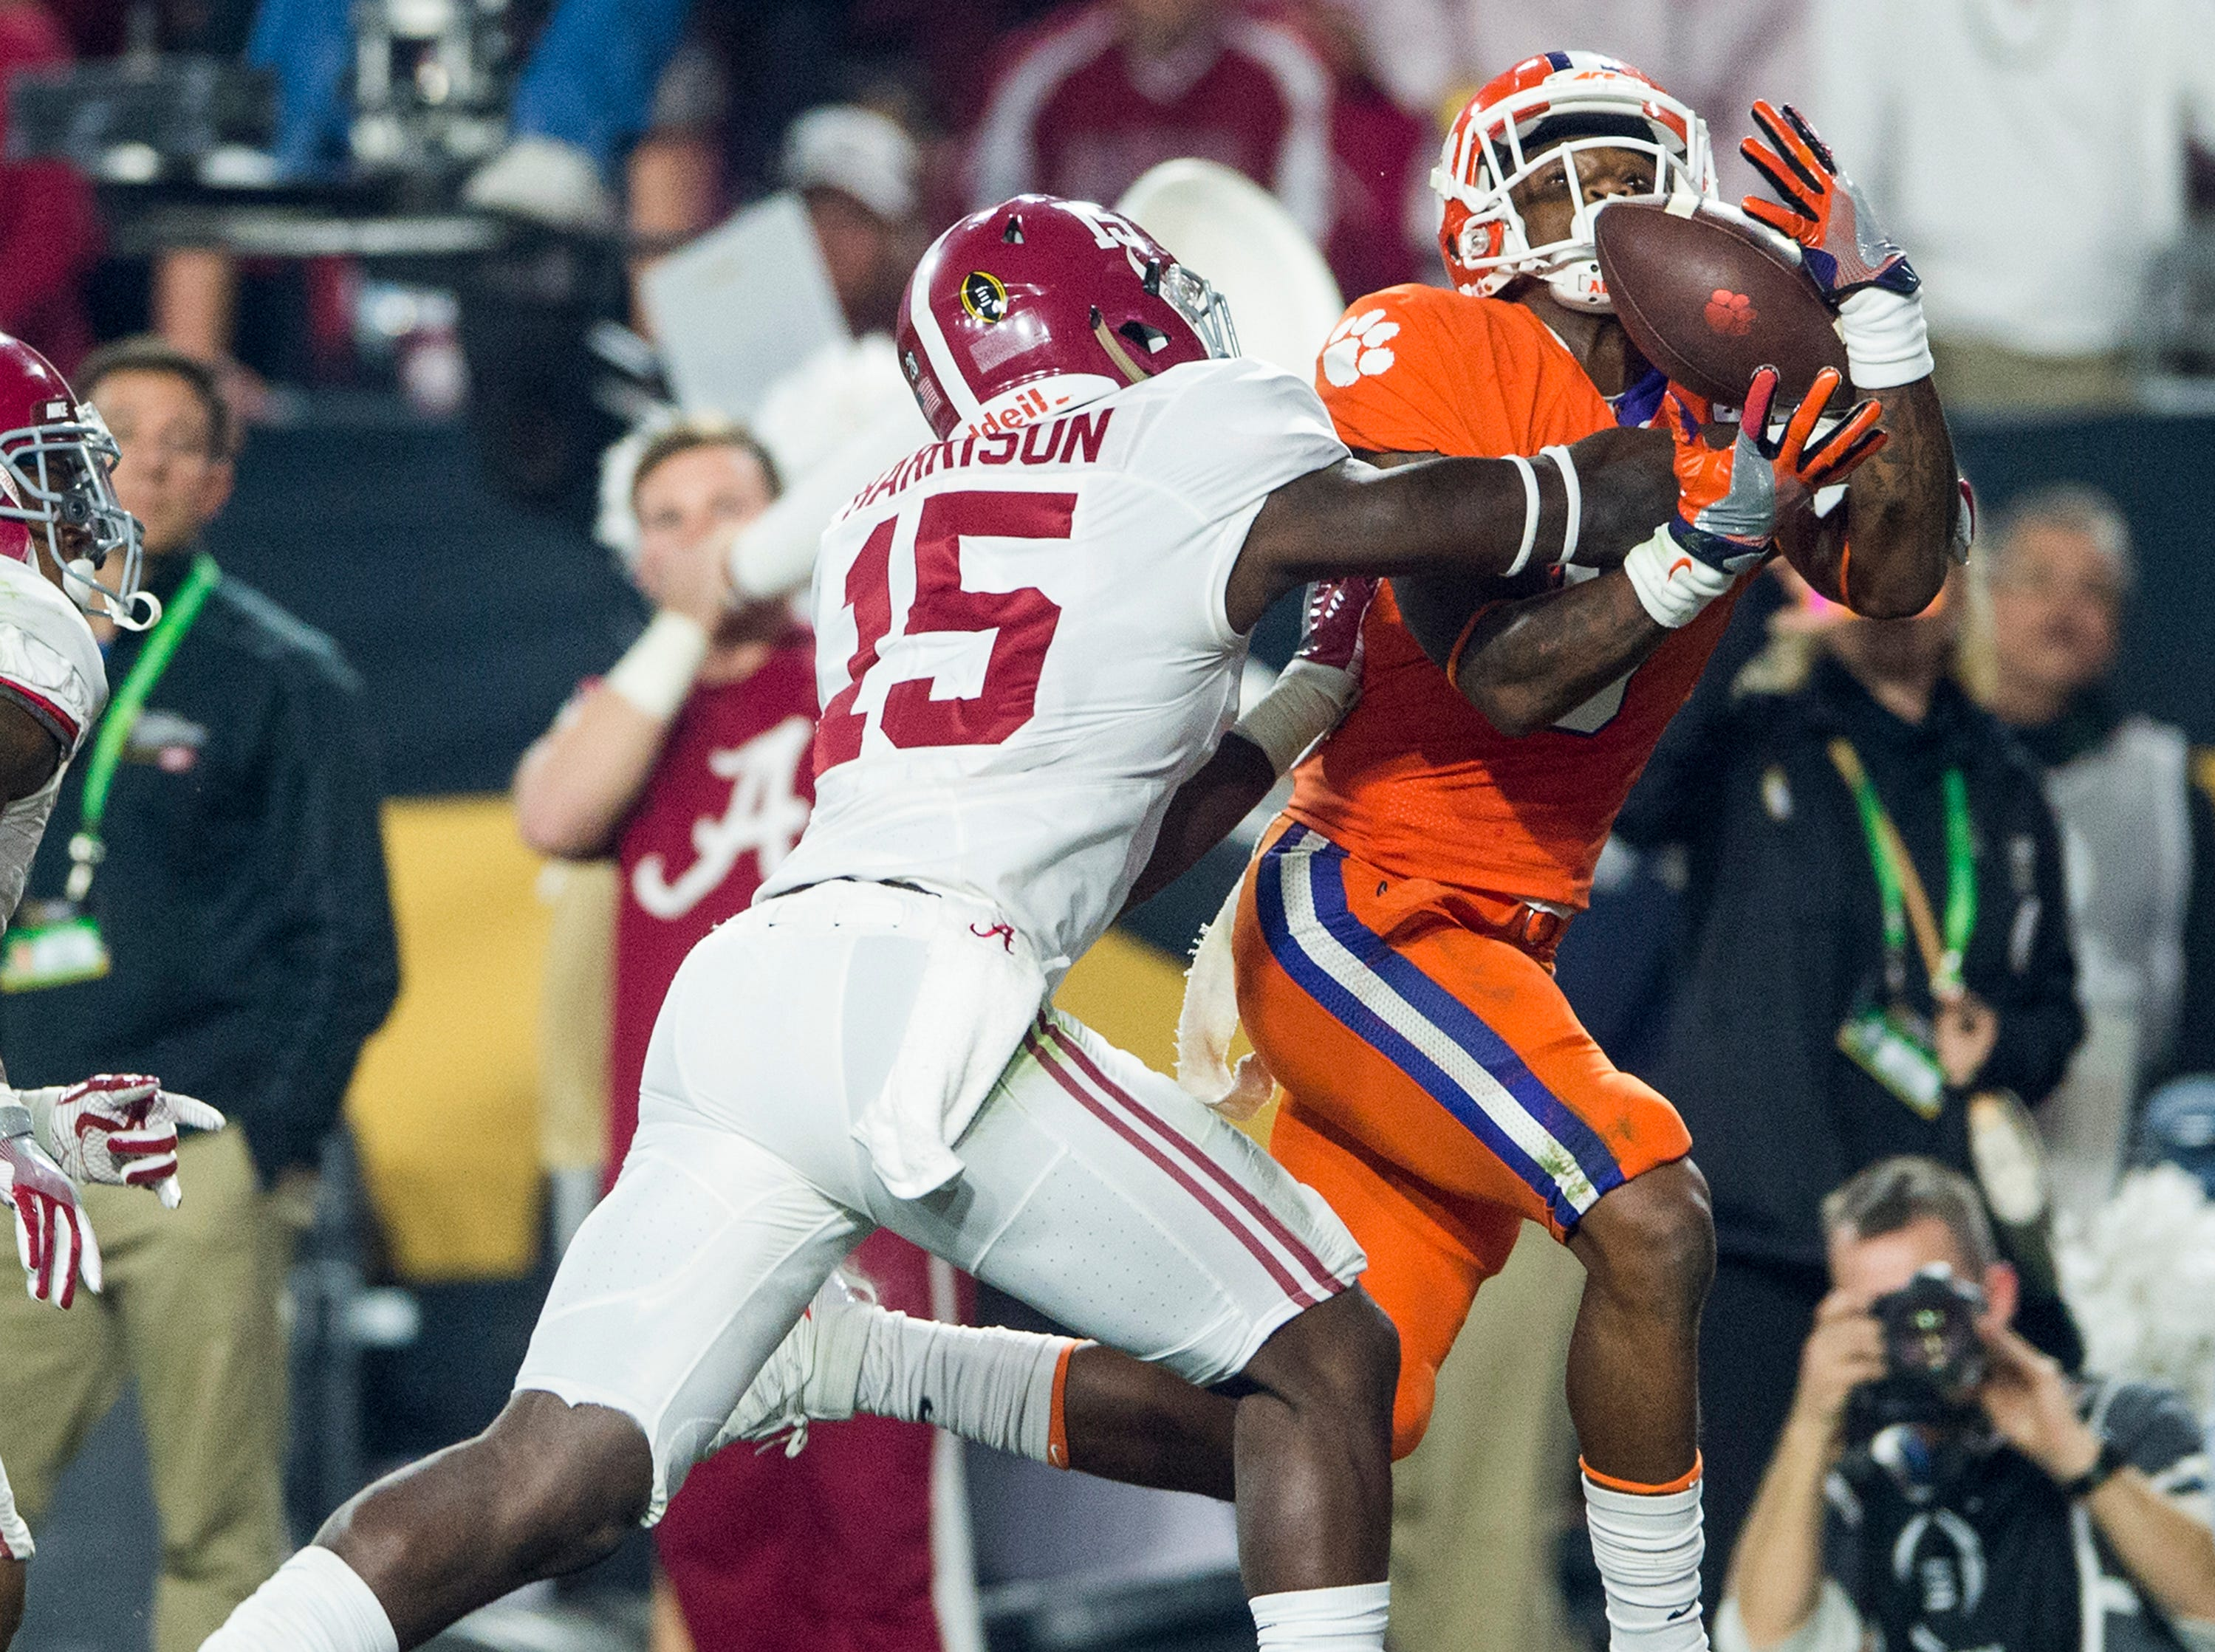 Alabama defensive back Ronnie Harrison (15) breaks up a pass against Clemson wide receiver Artavis Scott (3) in the end zone in the College Football Playoff Championship Game on Monday January 11, 2016 at University of Phoenix Stadium in Glendale, Az.